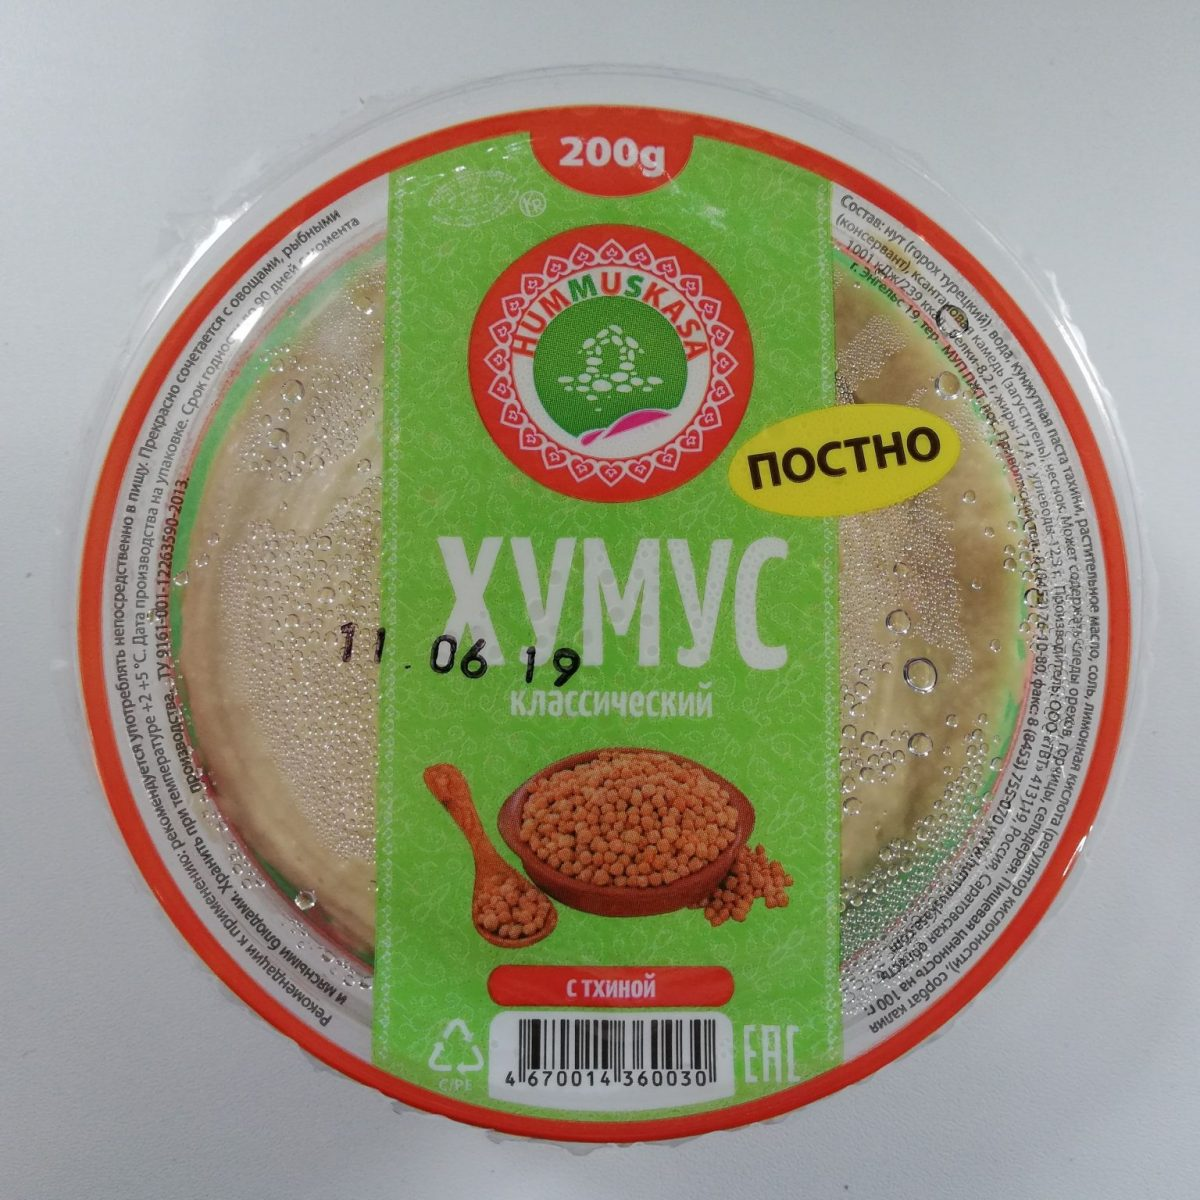 Hummus in Russia